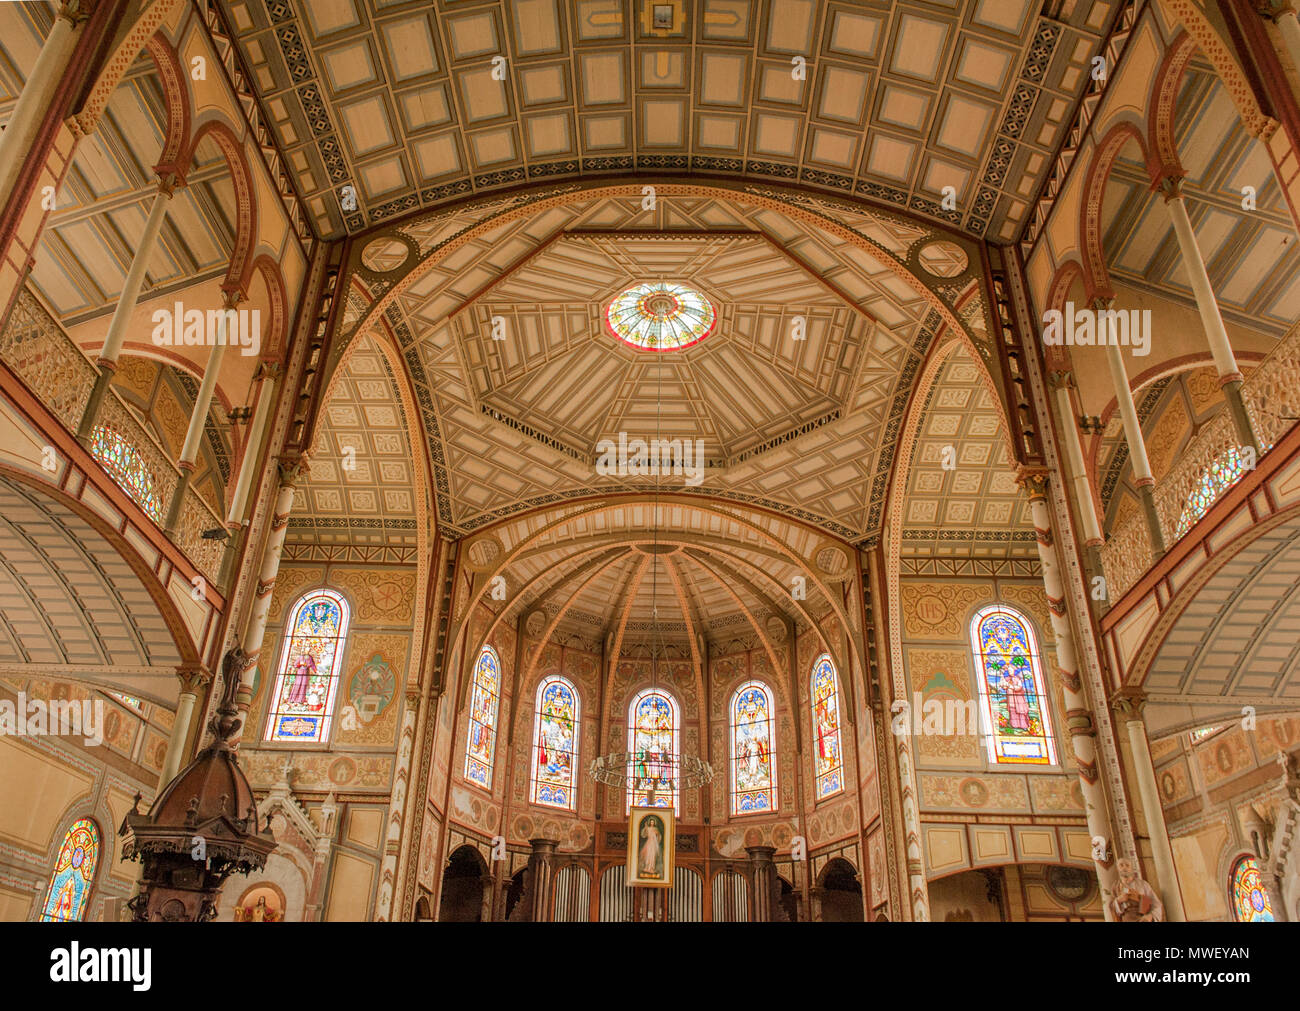 The catholic cathedral of Fort-de-France, capital of Martinique - Stock Image